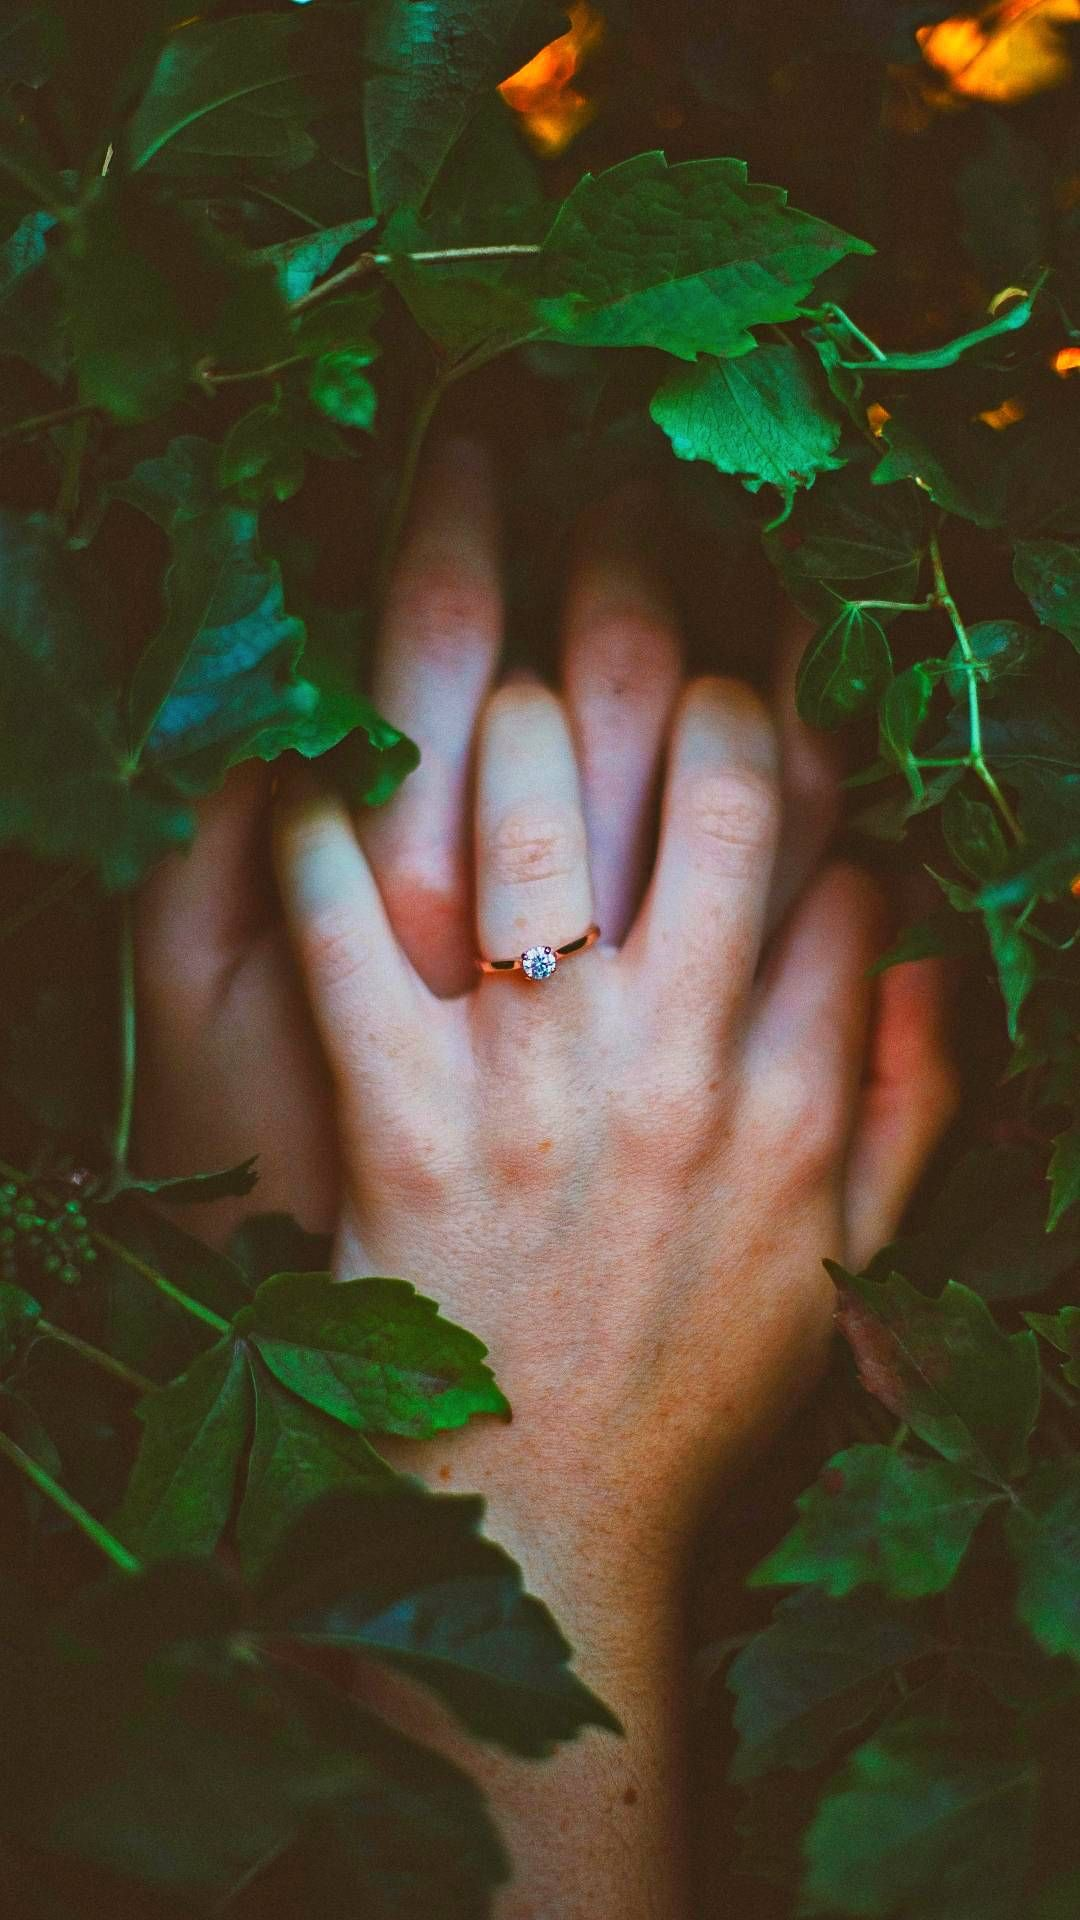 Relationship Couple Holding Hand Wallpapers 1080x1920 In 2020 Couple Holding Hands Hand Wallpaper Love Wallpaper Download